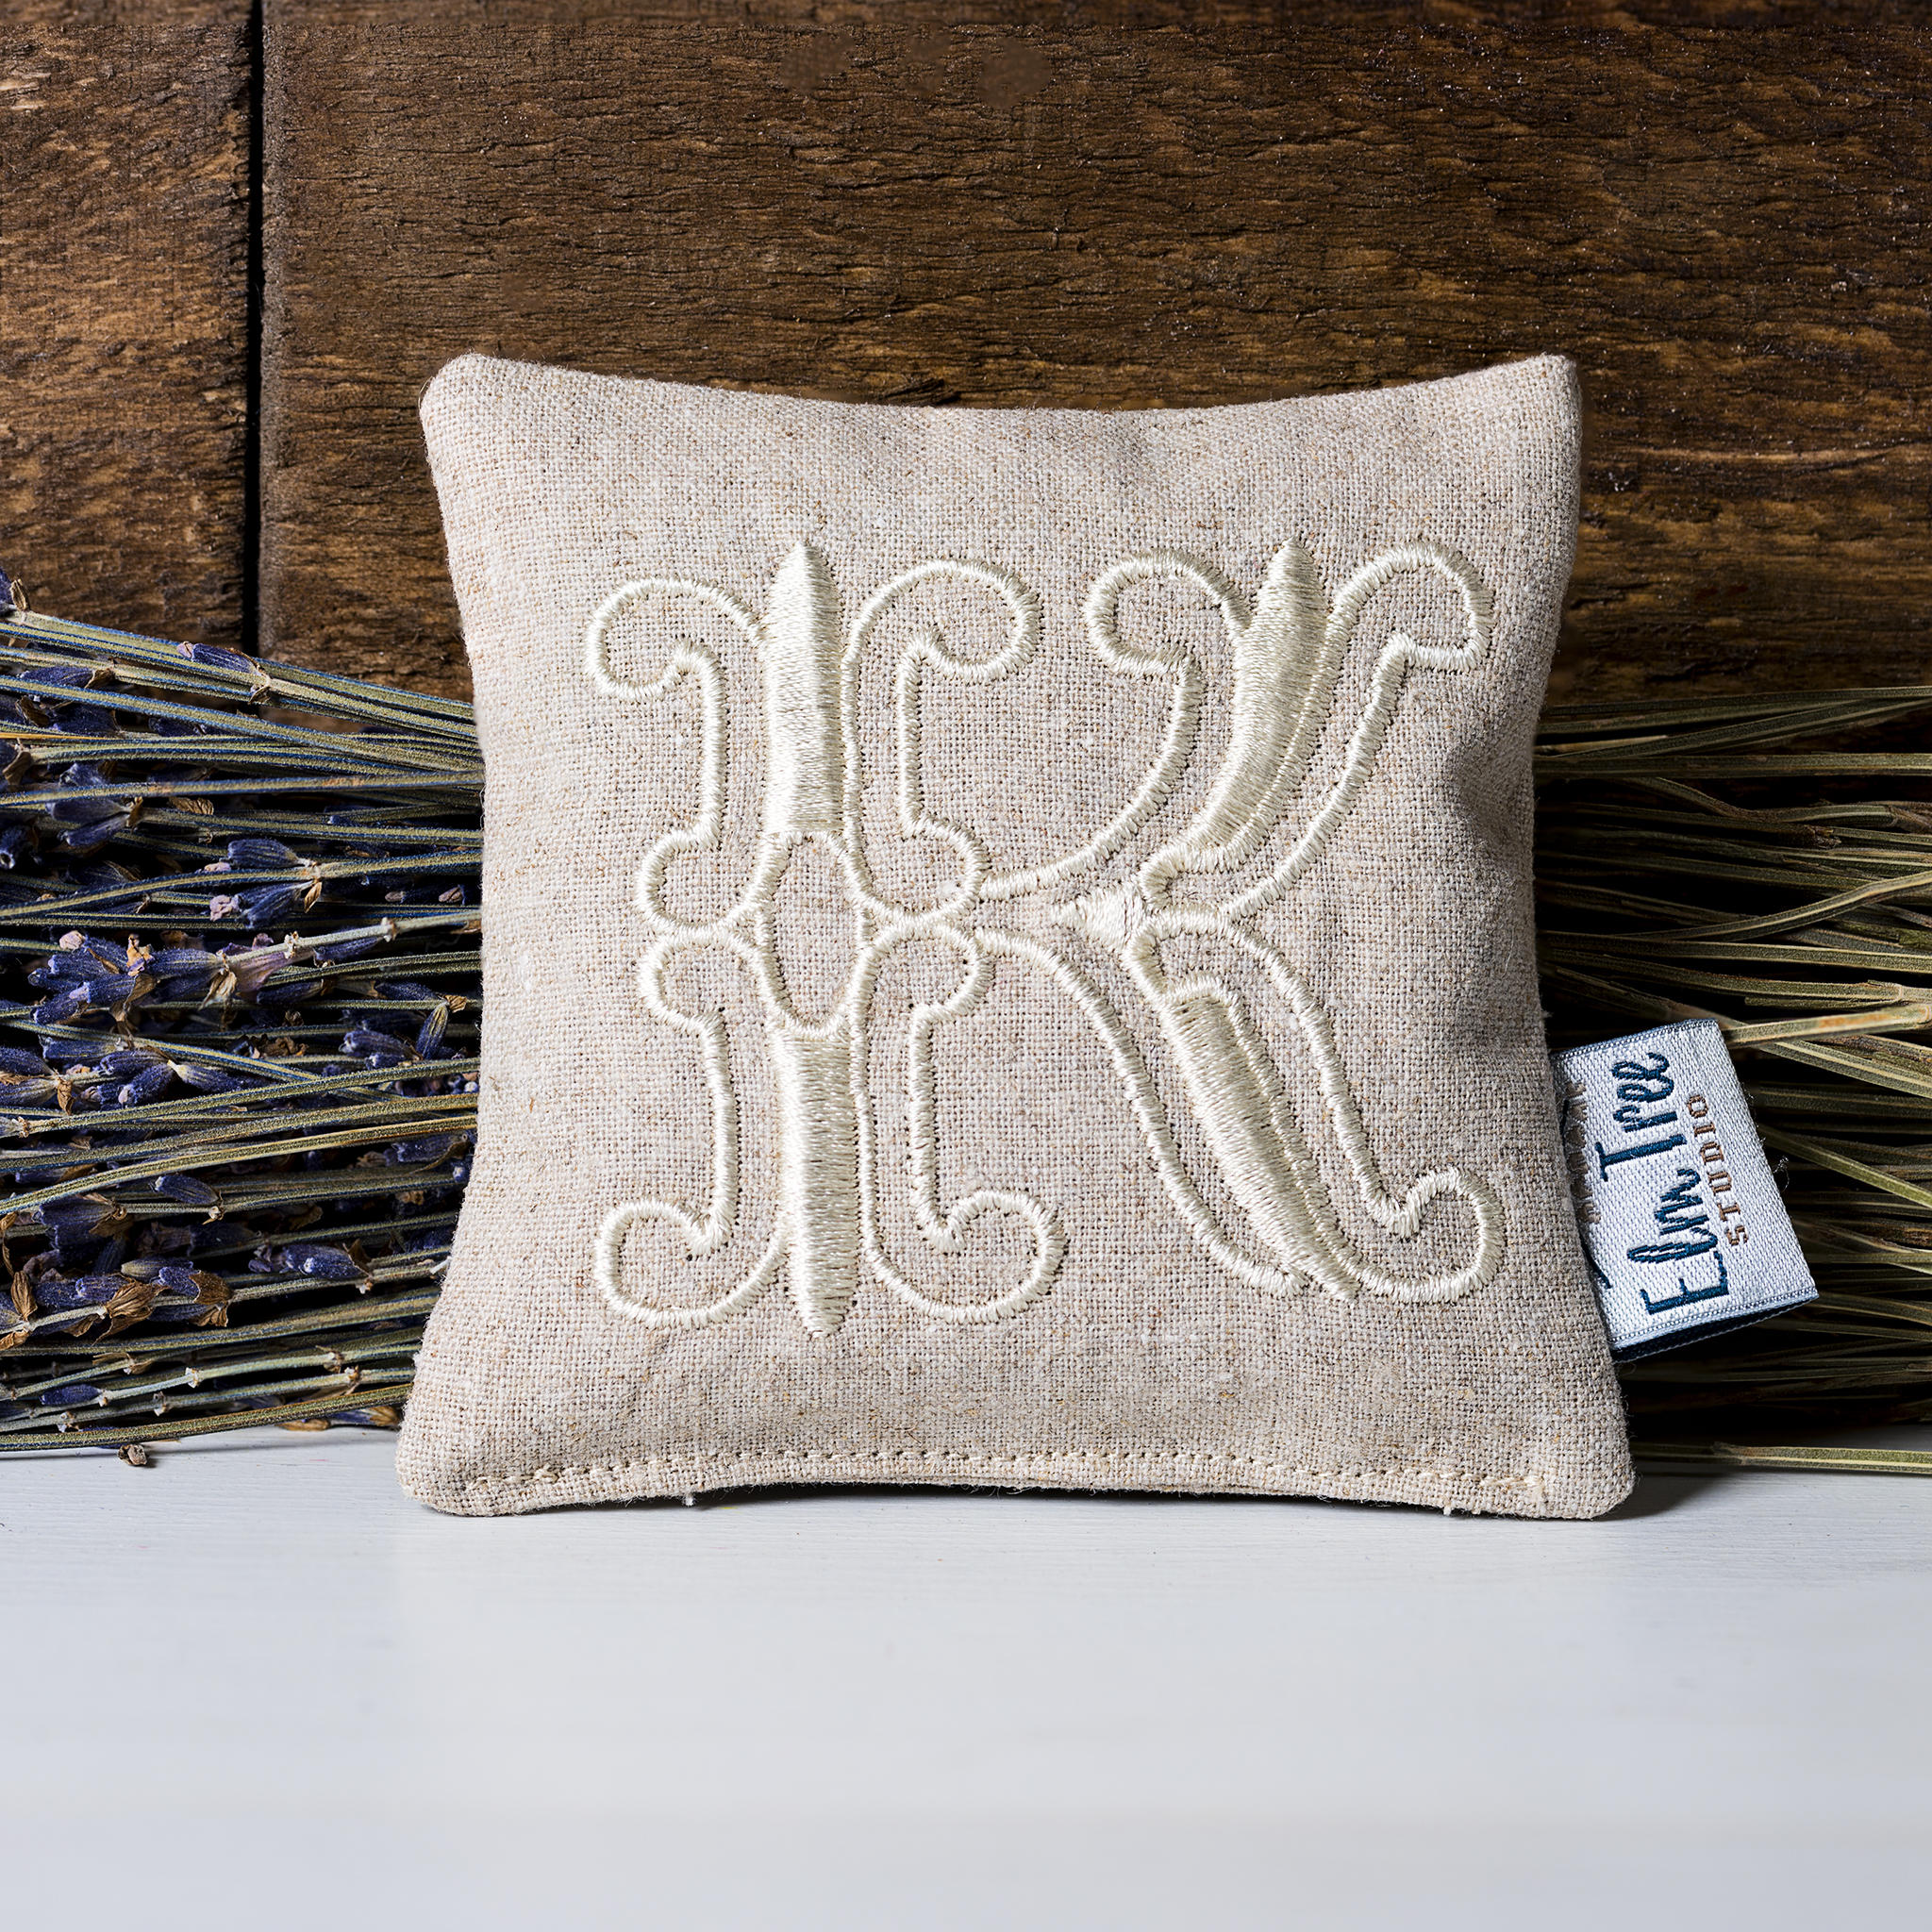 Natural linen lavender pillow with monogrammed embroidery